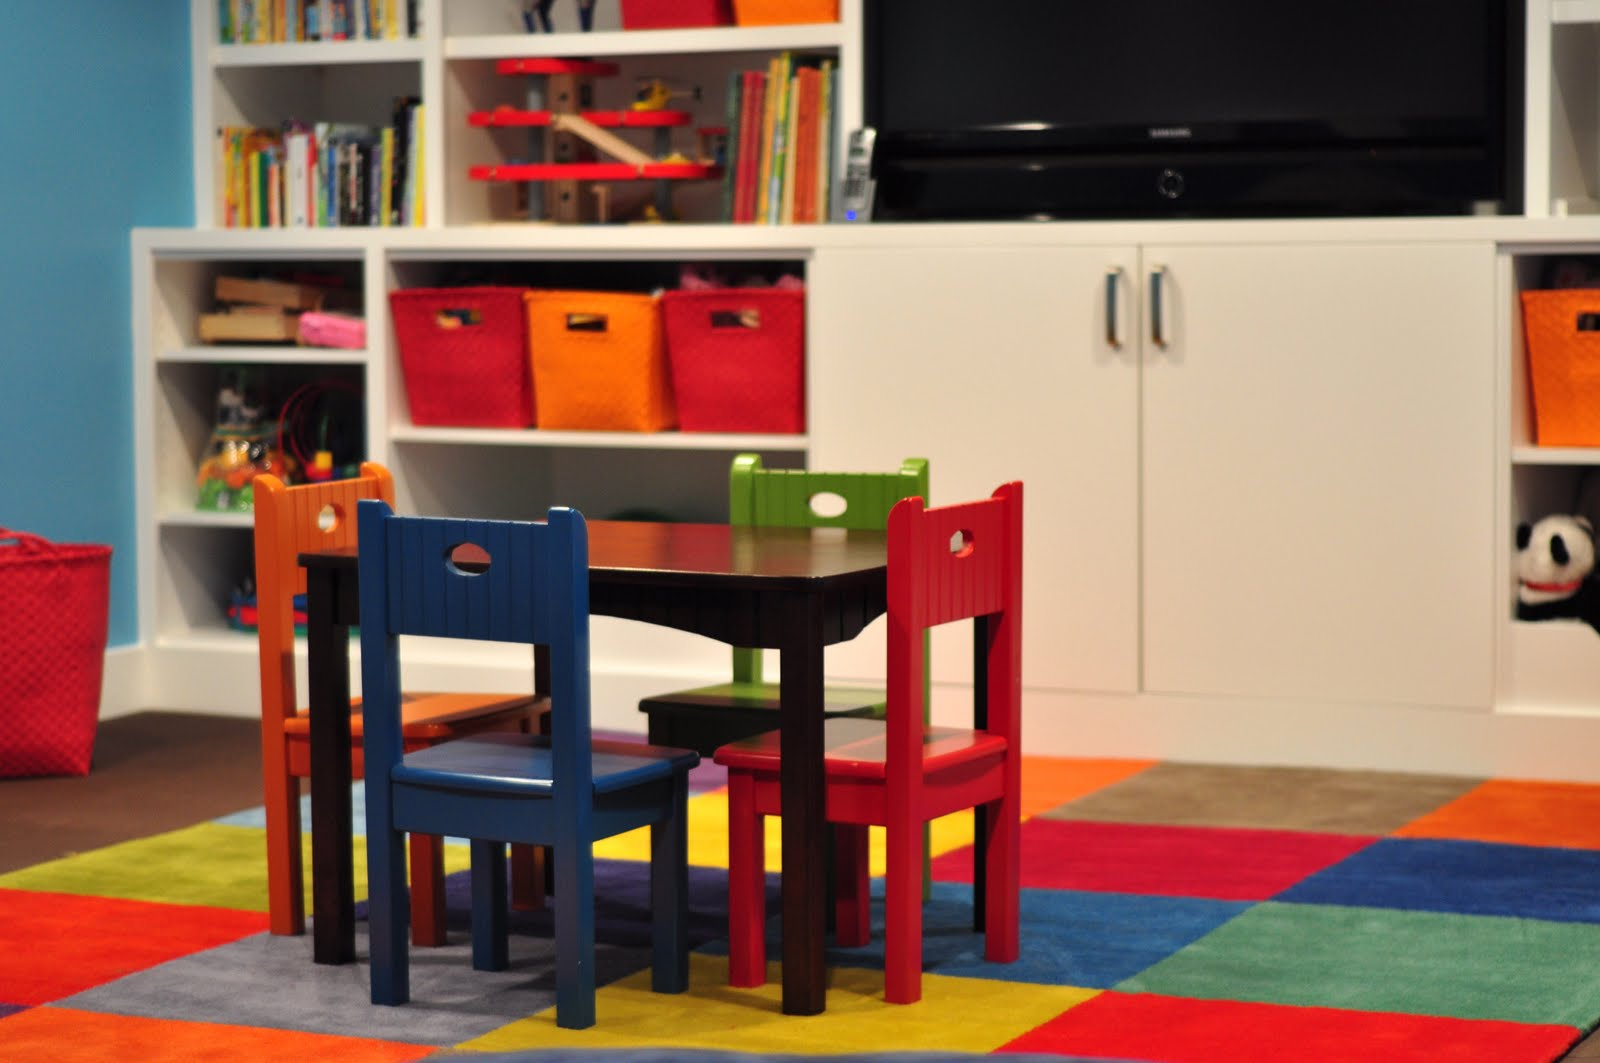 Kids Playroom Storage Ideas Royals Courage Greatest Alternative Possibility Playroom Furniture,Tongue And Groove Shiplap Wall